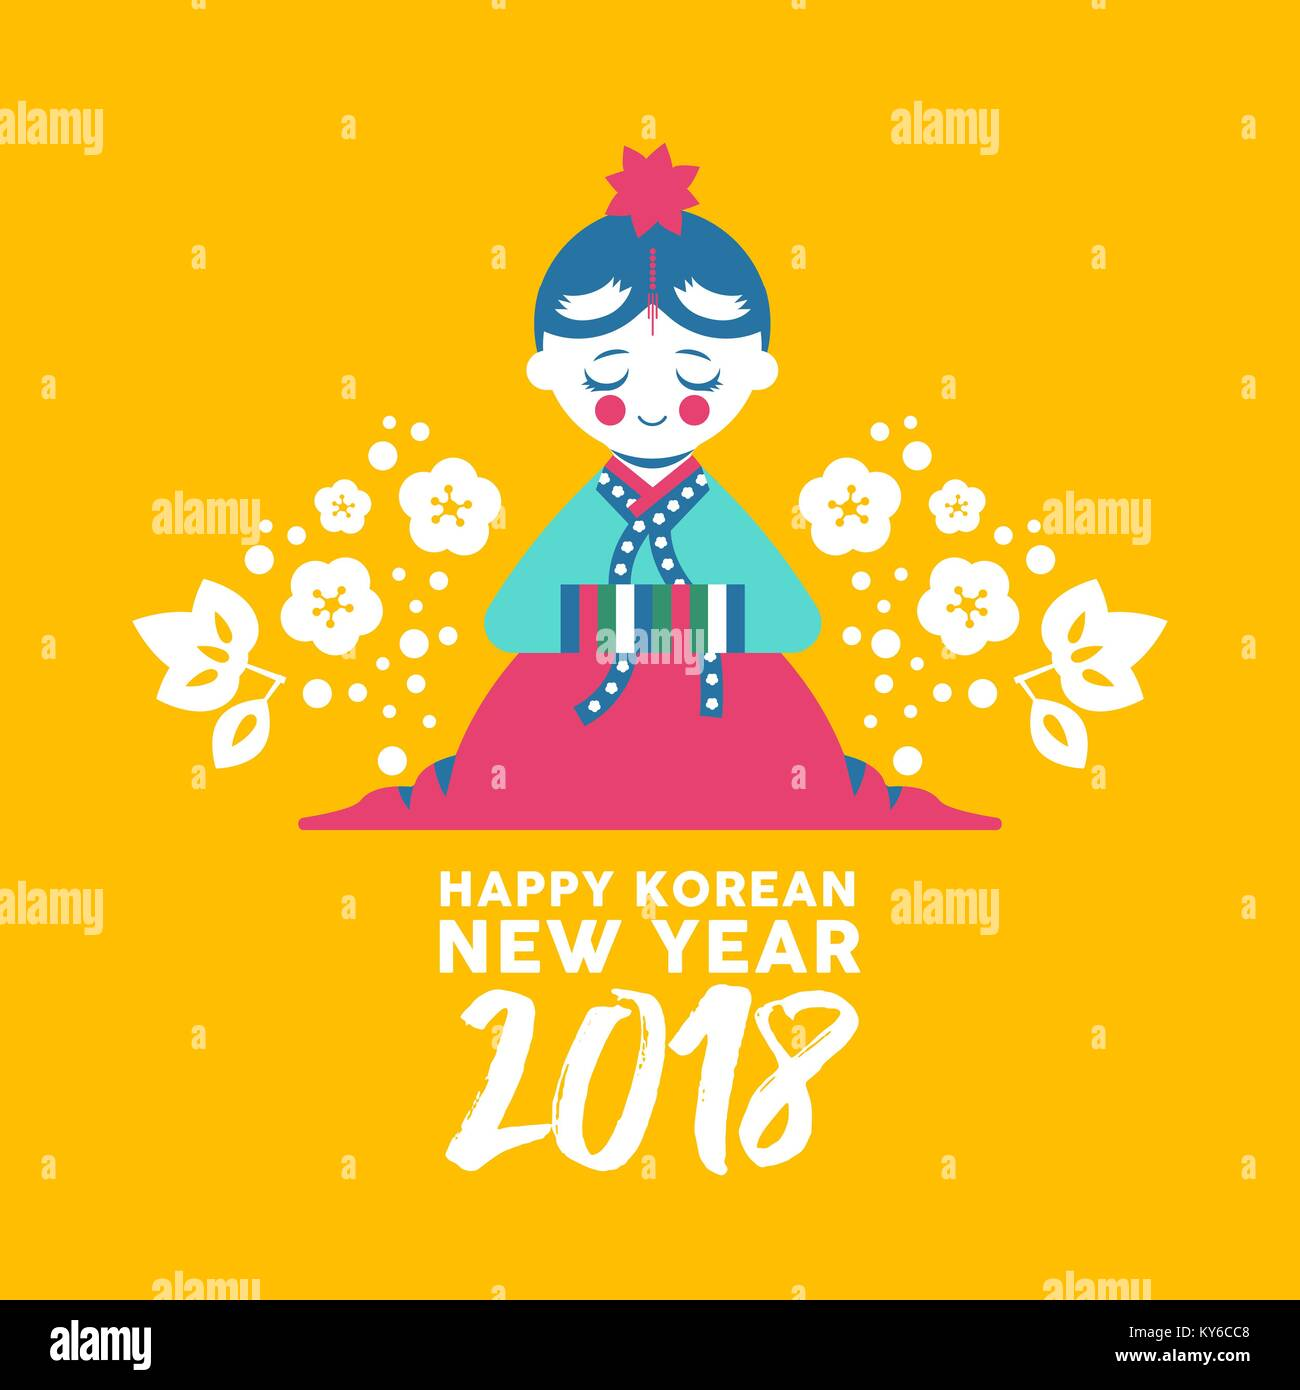 Happy korean new year 2018 greeting card cute girl bowing for stock happy korean new year 2018 greeting card cute girl bowing for happiness and good fortune kid in colorful traditional hanbok dress with text quote f m4hsunfo